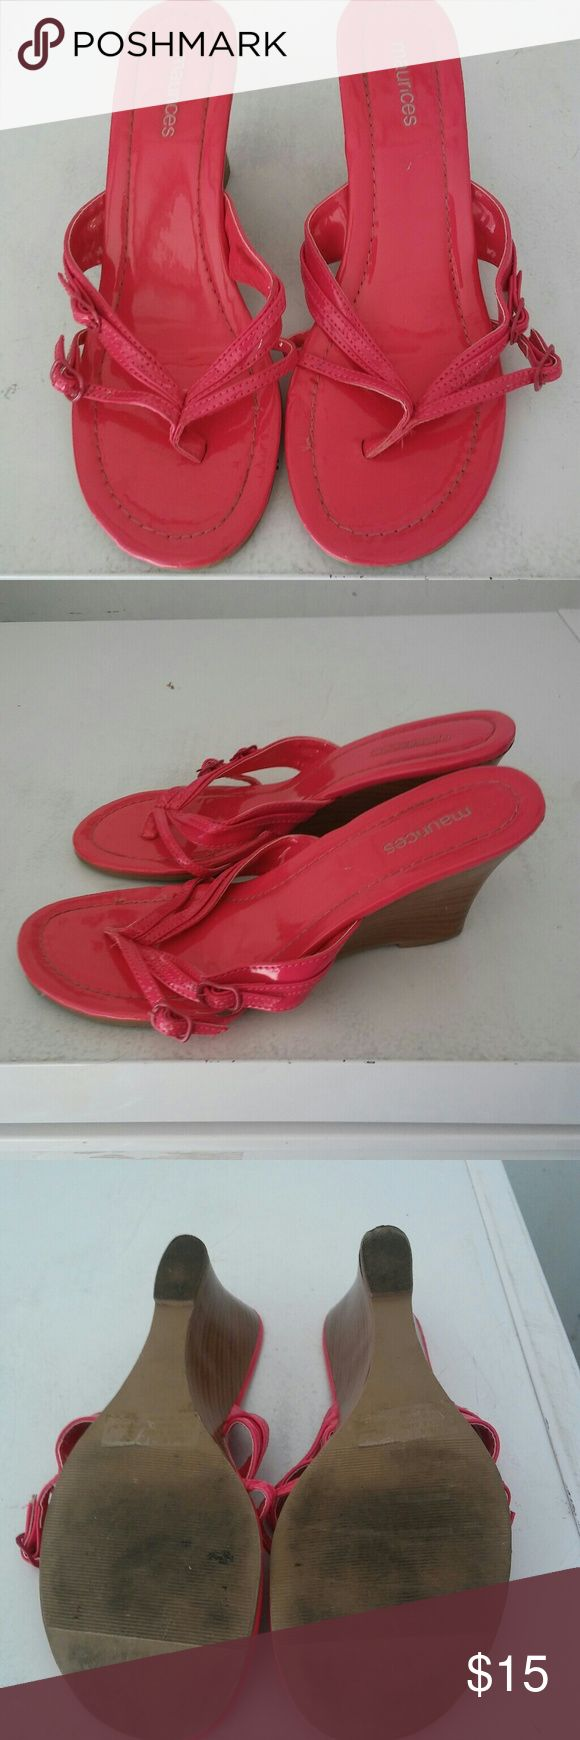 Maurice's Shoes Size 8 Hot pink Maurice's size 8 Slide on. These are in overall pretty good condition Will ship out within 24-48Hrs Let me know if you have any questions Thank you for looking:-D Maurices Shoes Wedges